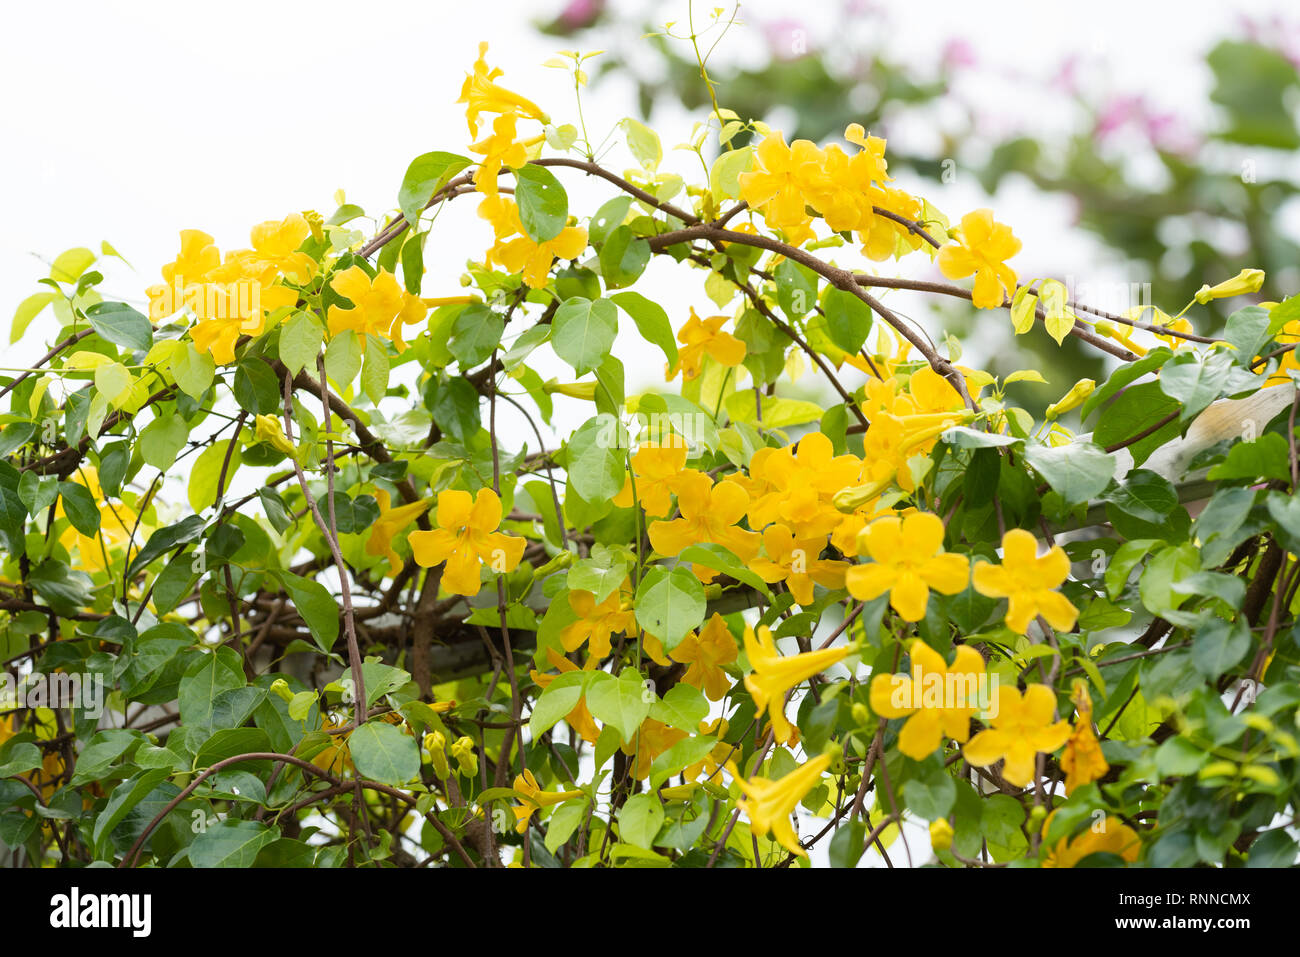 Beautiful Yellow Flowers With Green Leaves On Metal Fence Over White